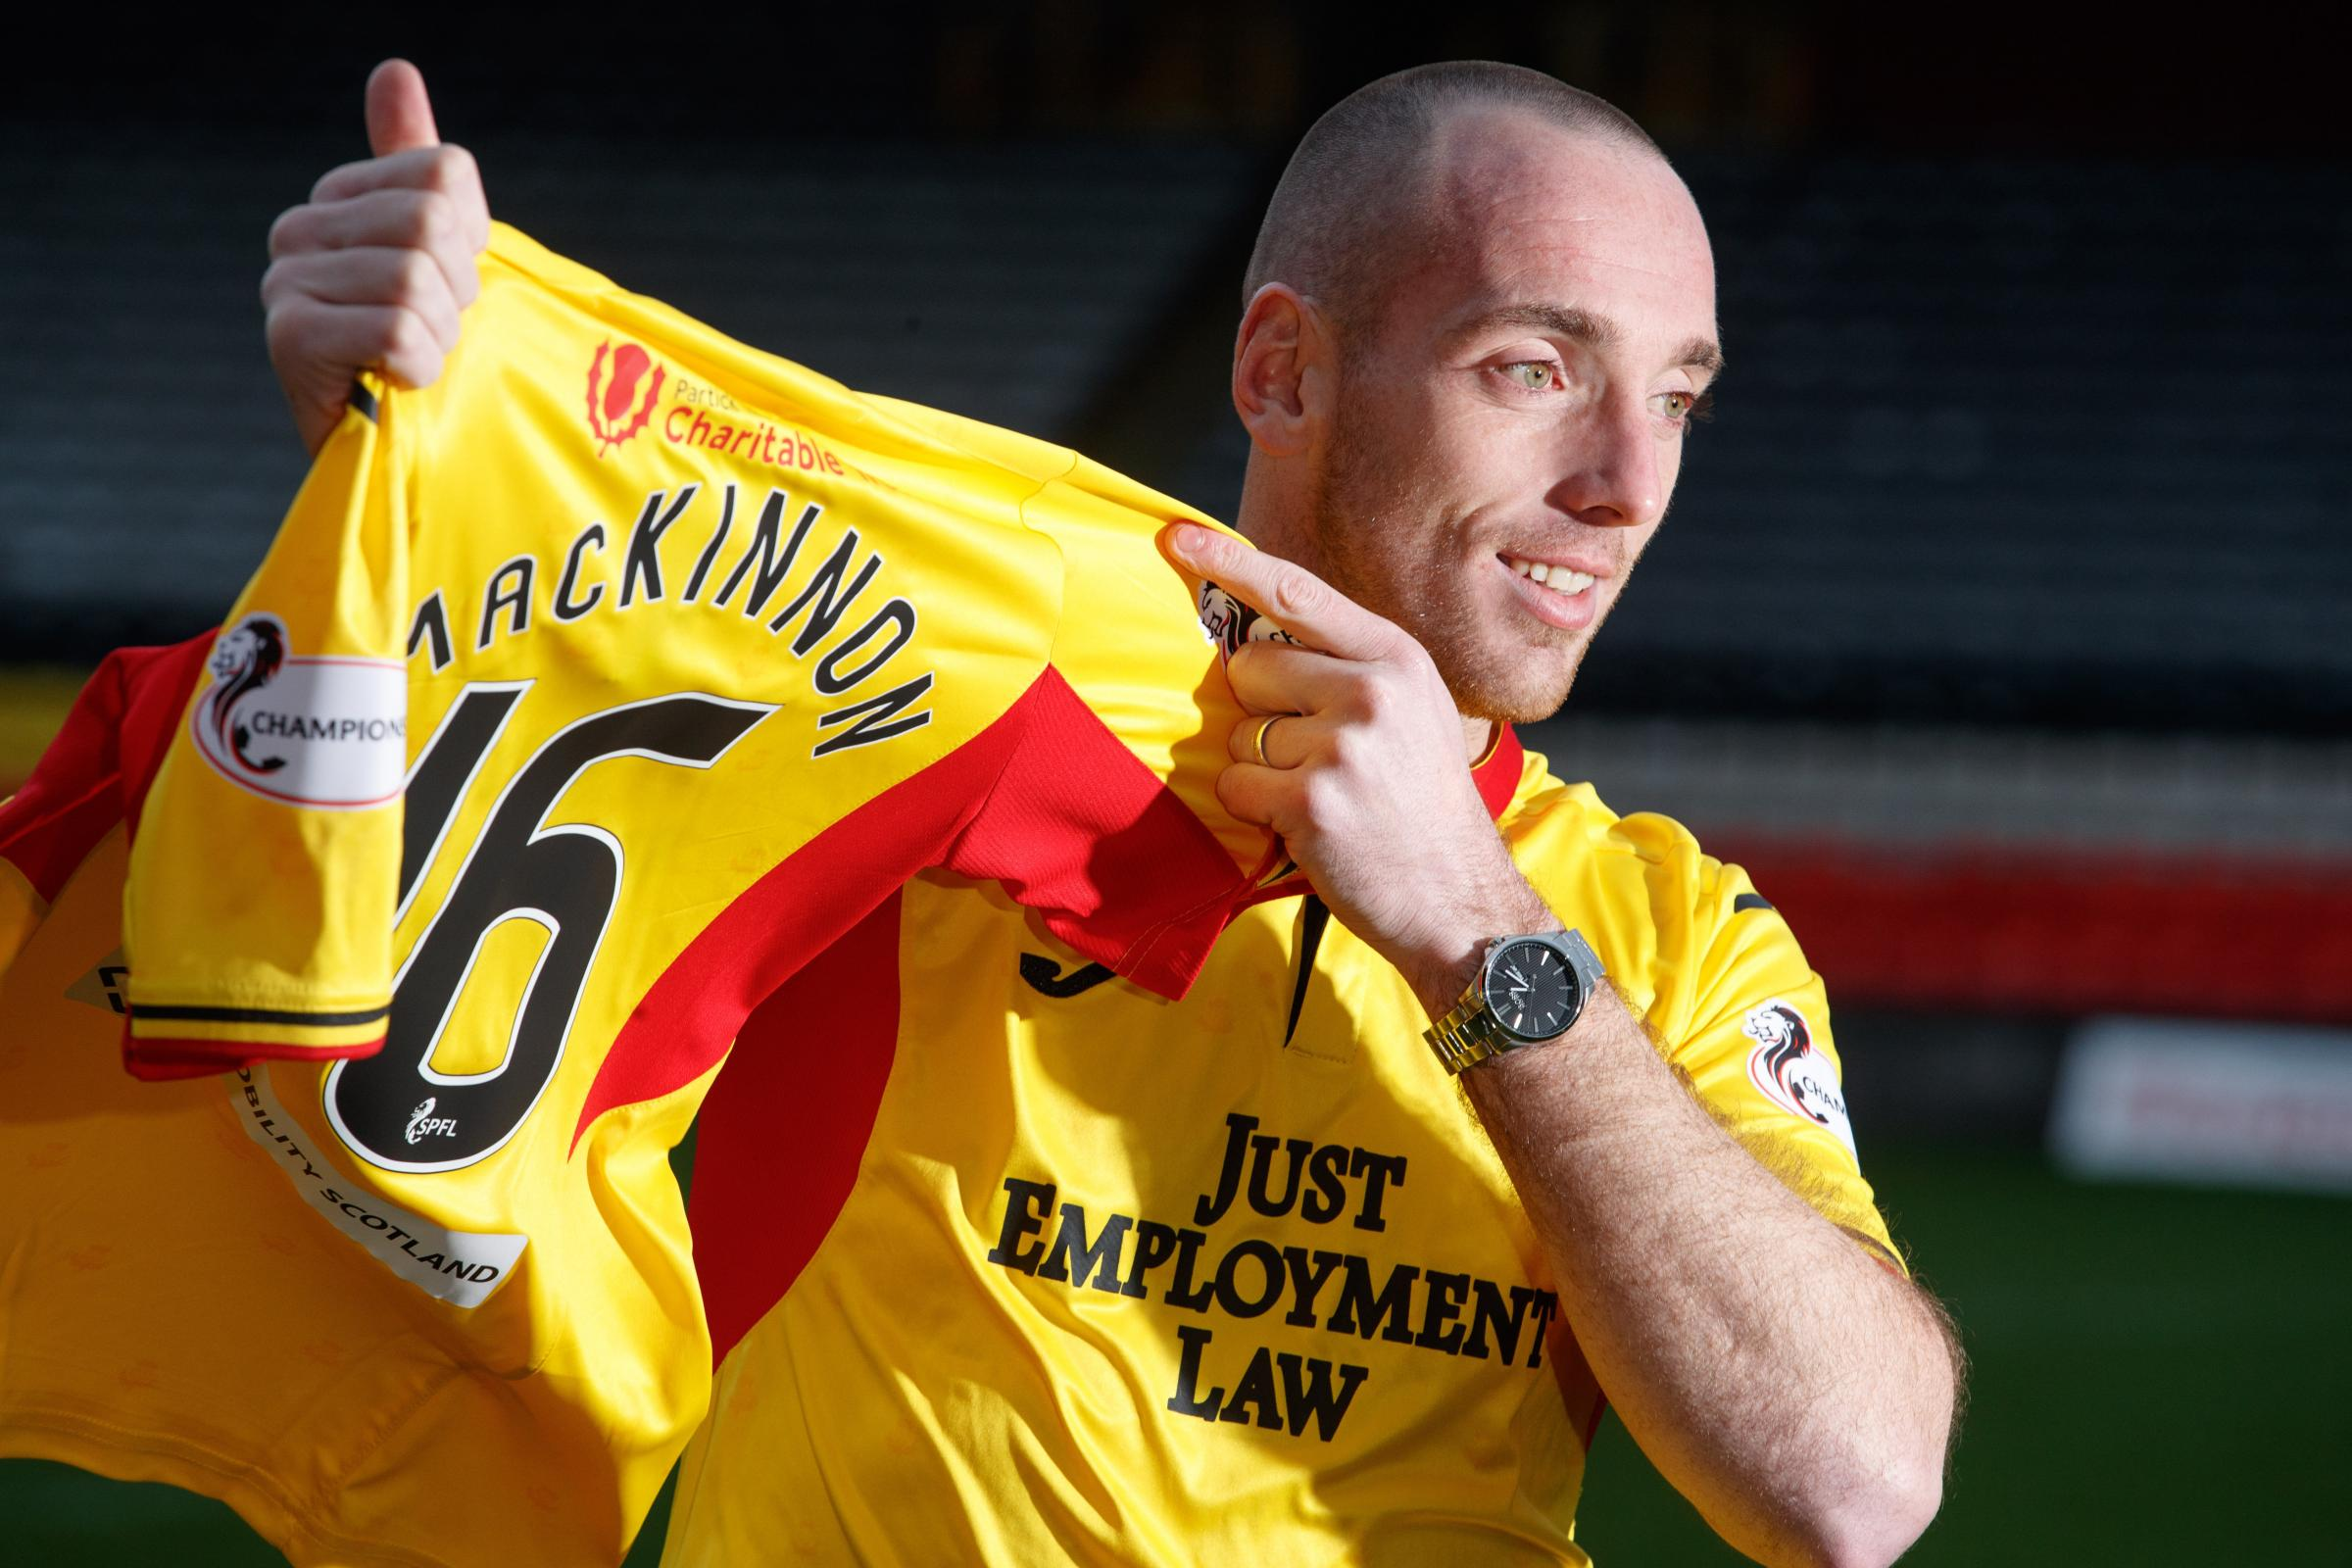 Partick Thistle's Darian MacKinnon relishing battle with Scott Brown